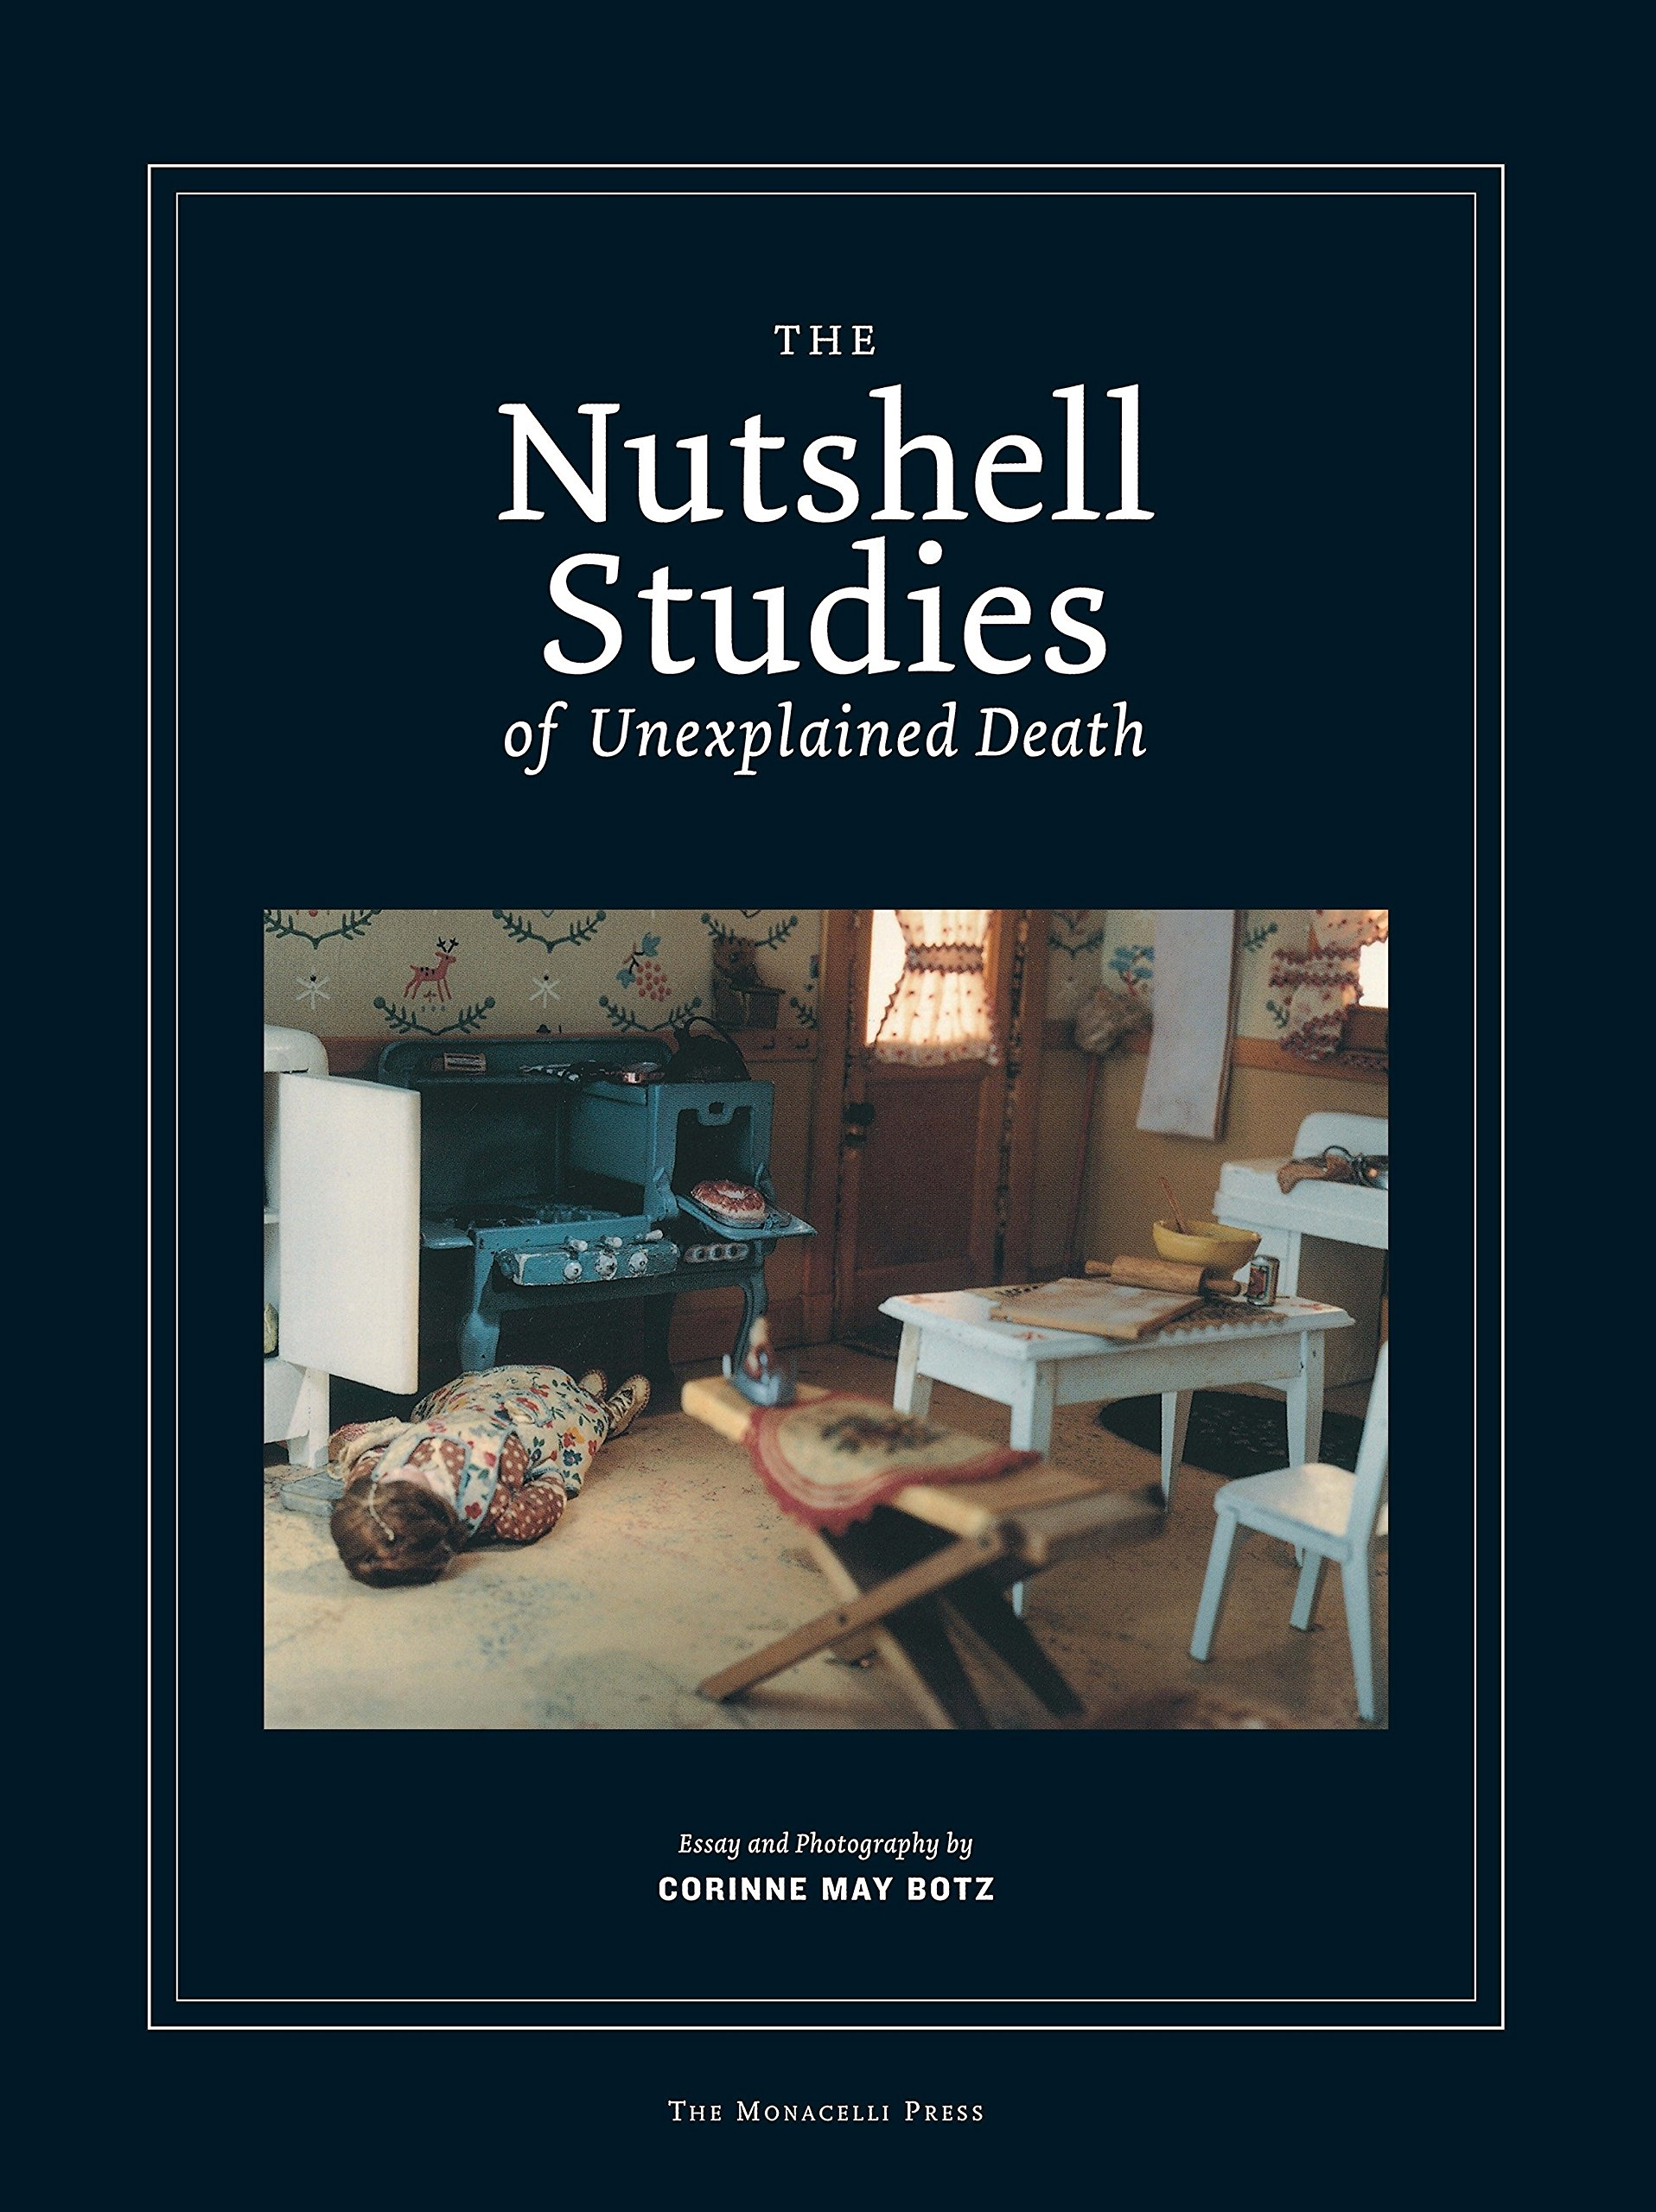 The Nutshell Studies of Unexplained Death , by Corinne May Botz